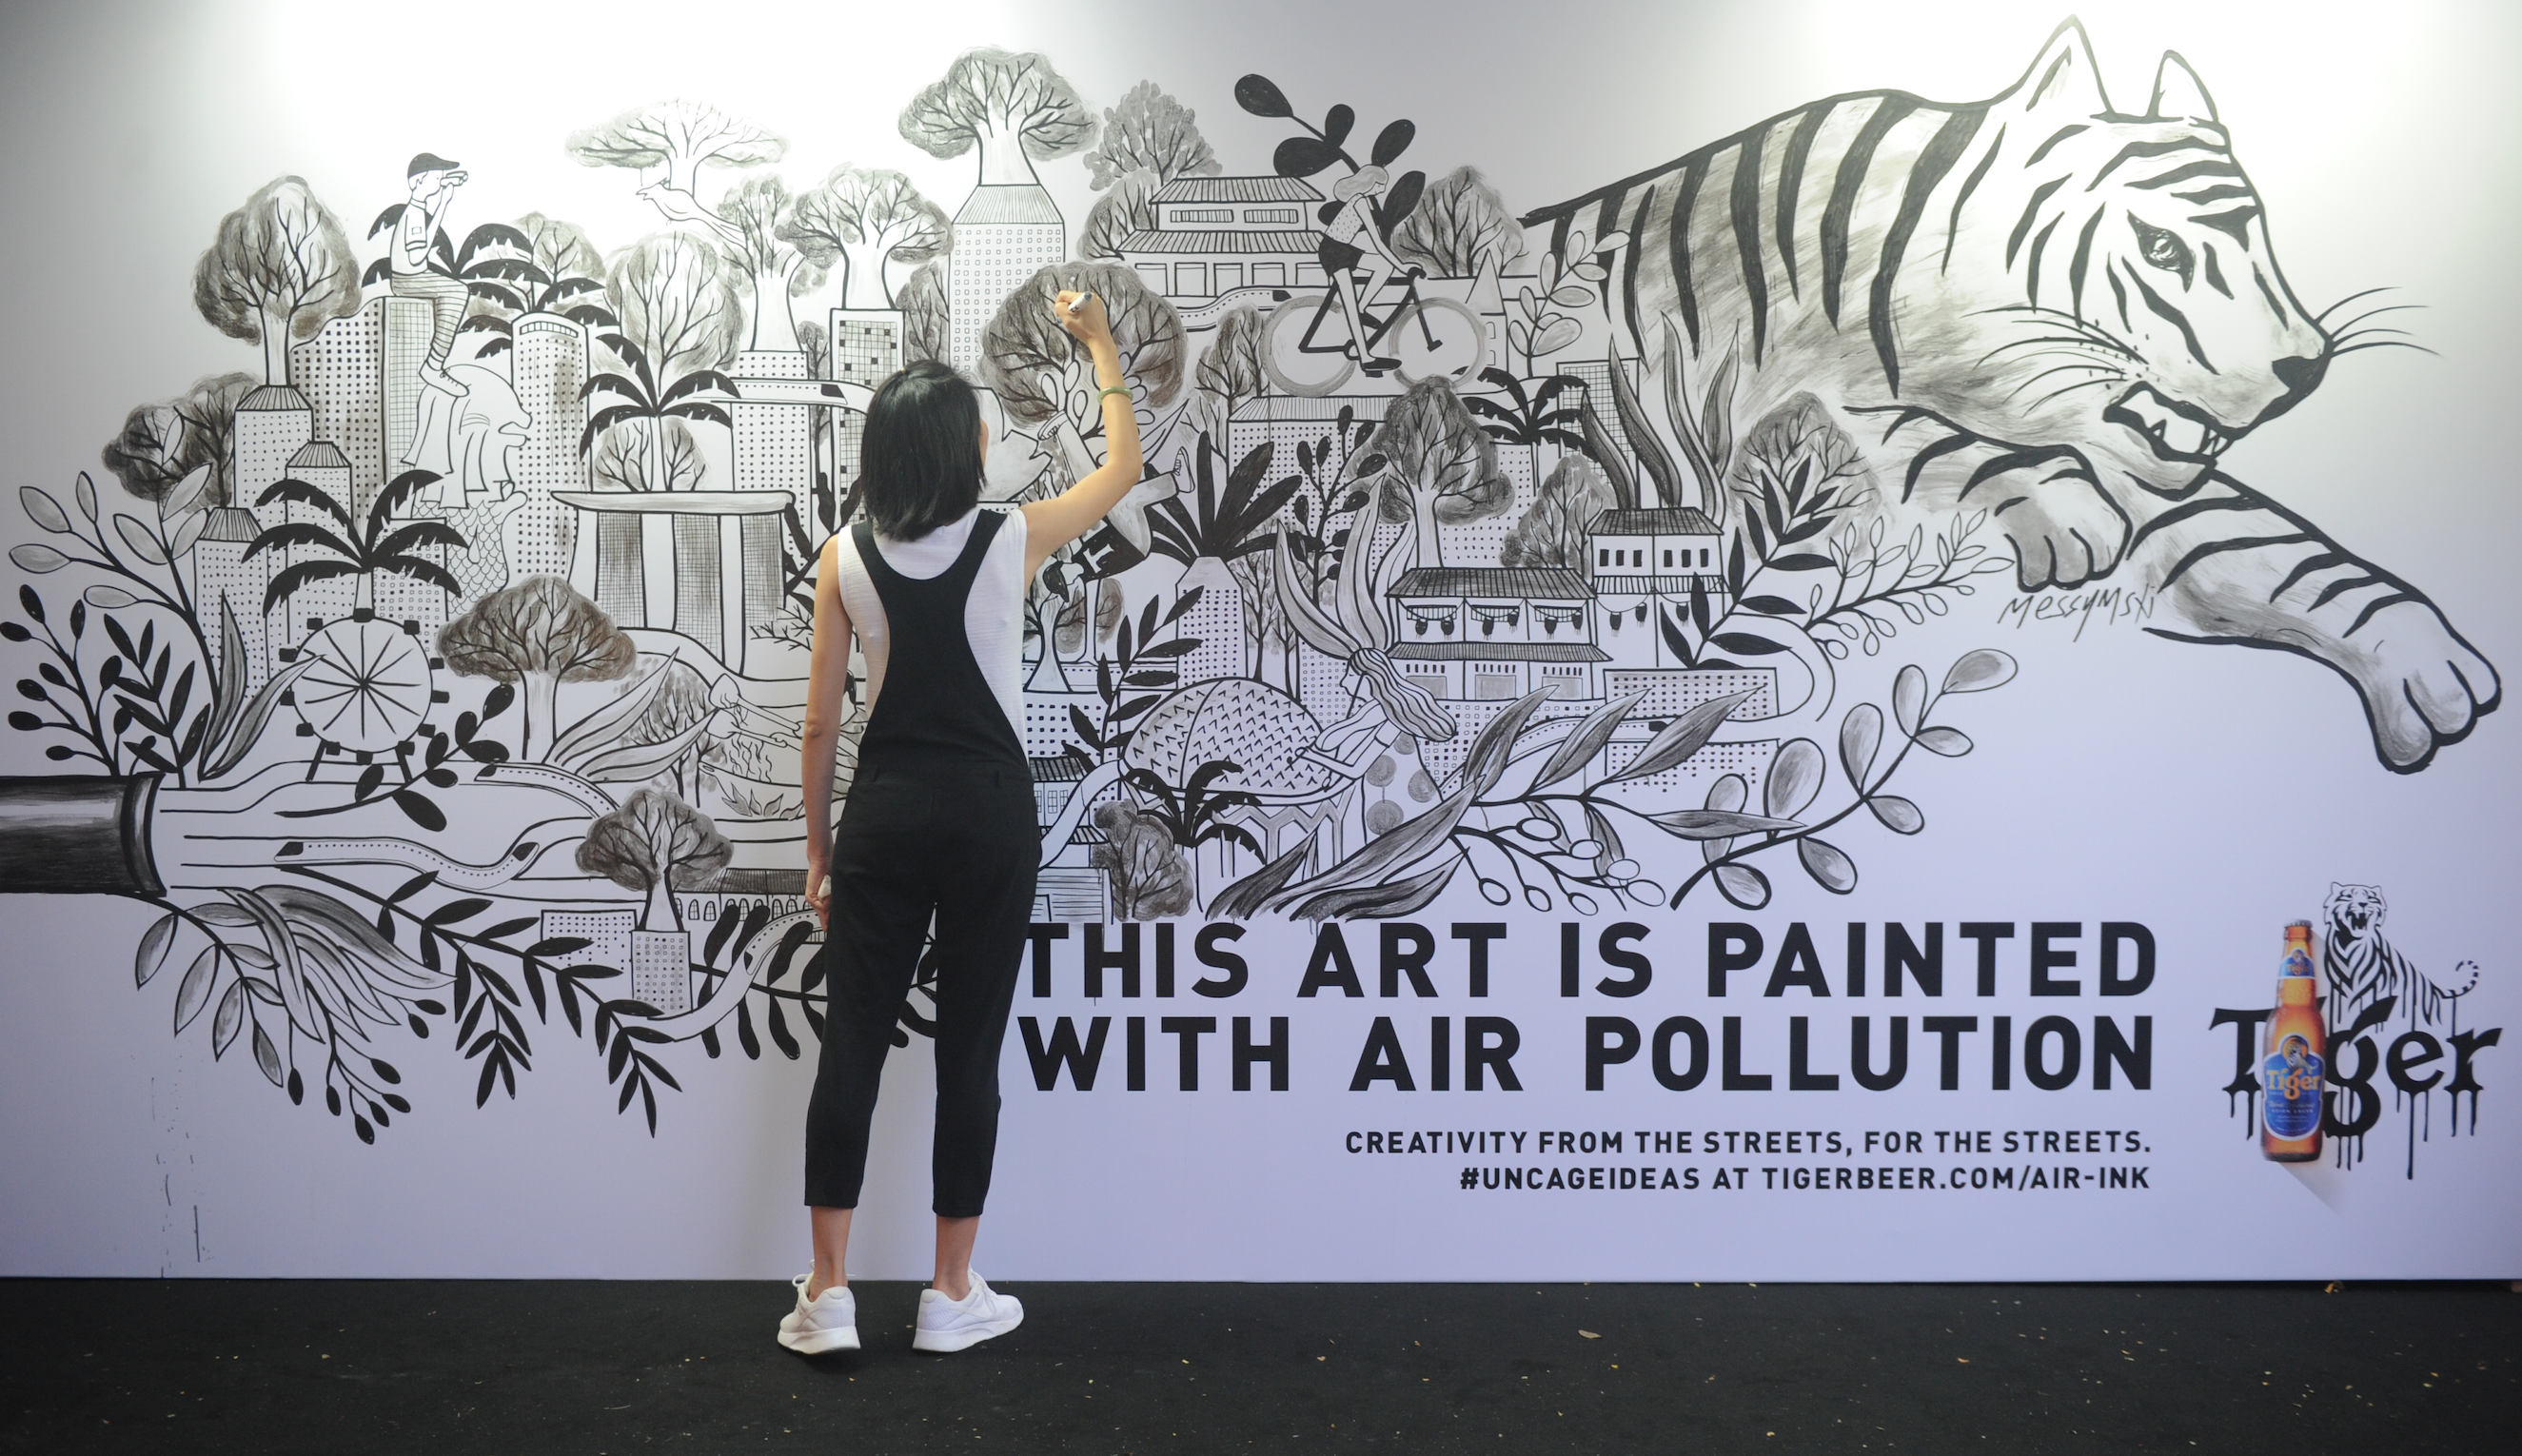 How A Pop Up Project Is Turning Air Pollution Into Street